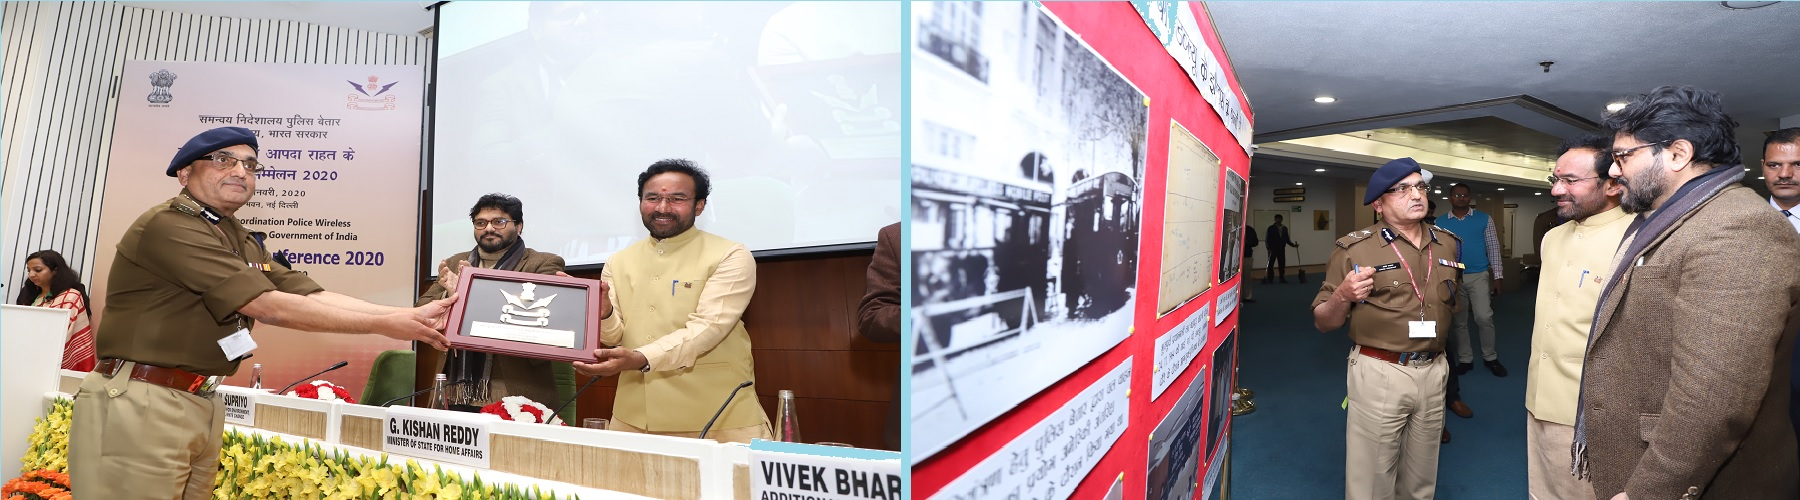 The Minister of State for Home Affairs, Shri G. Kishan Reddy at the Valedictory Session of the Conference of the Heads of Public Protection and Disaster Relief organisations, convened by the Directorate of Coordination Police Wireless (DCPW), in New Delhi